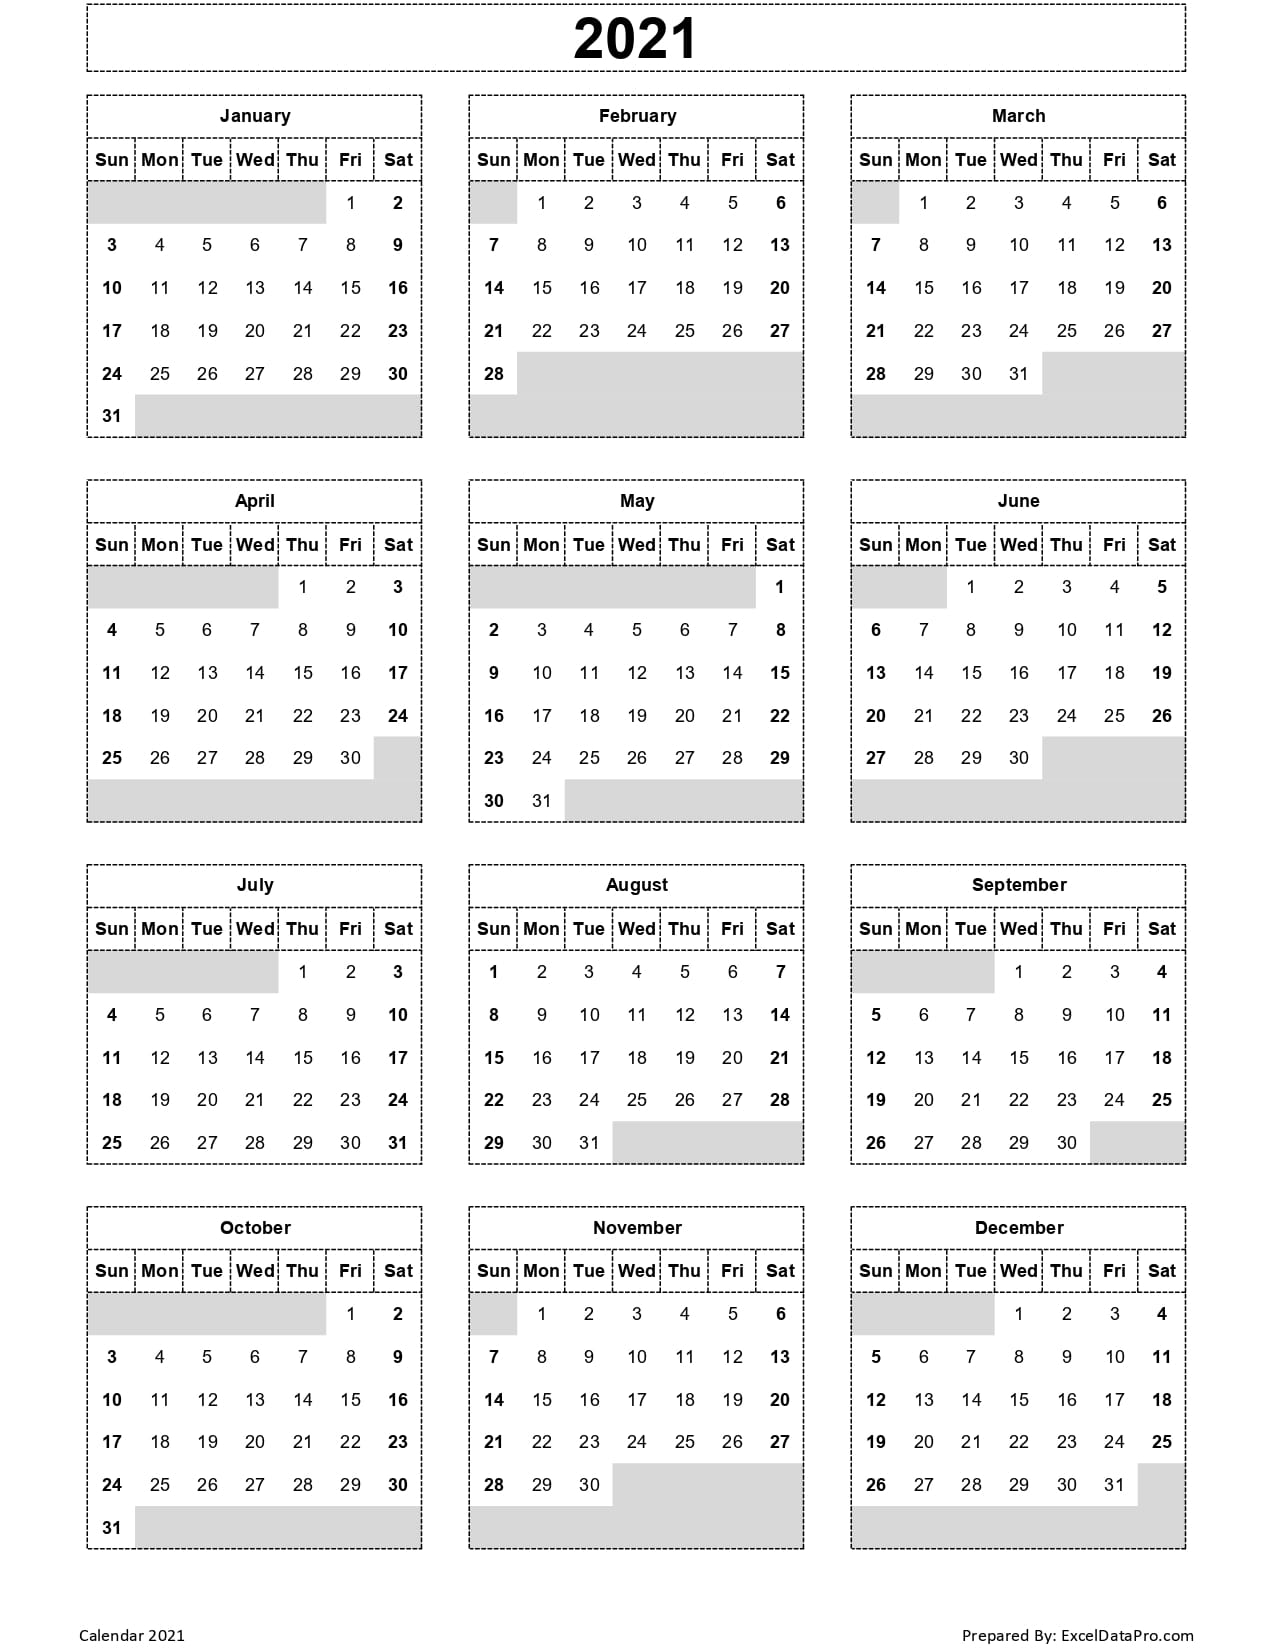 Download 2021 Yearly Calendar (Sun Start) Excel Template ...